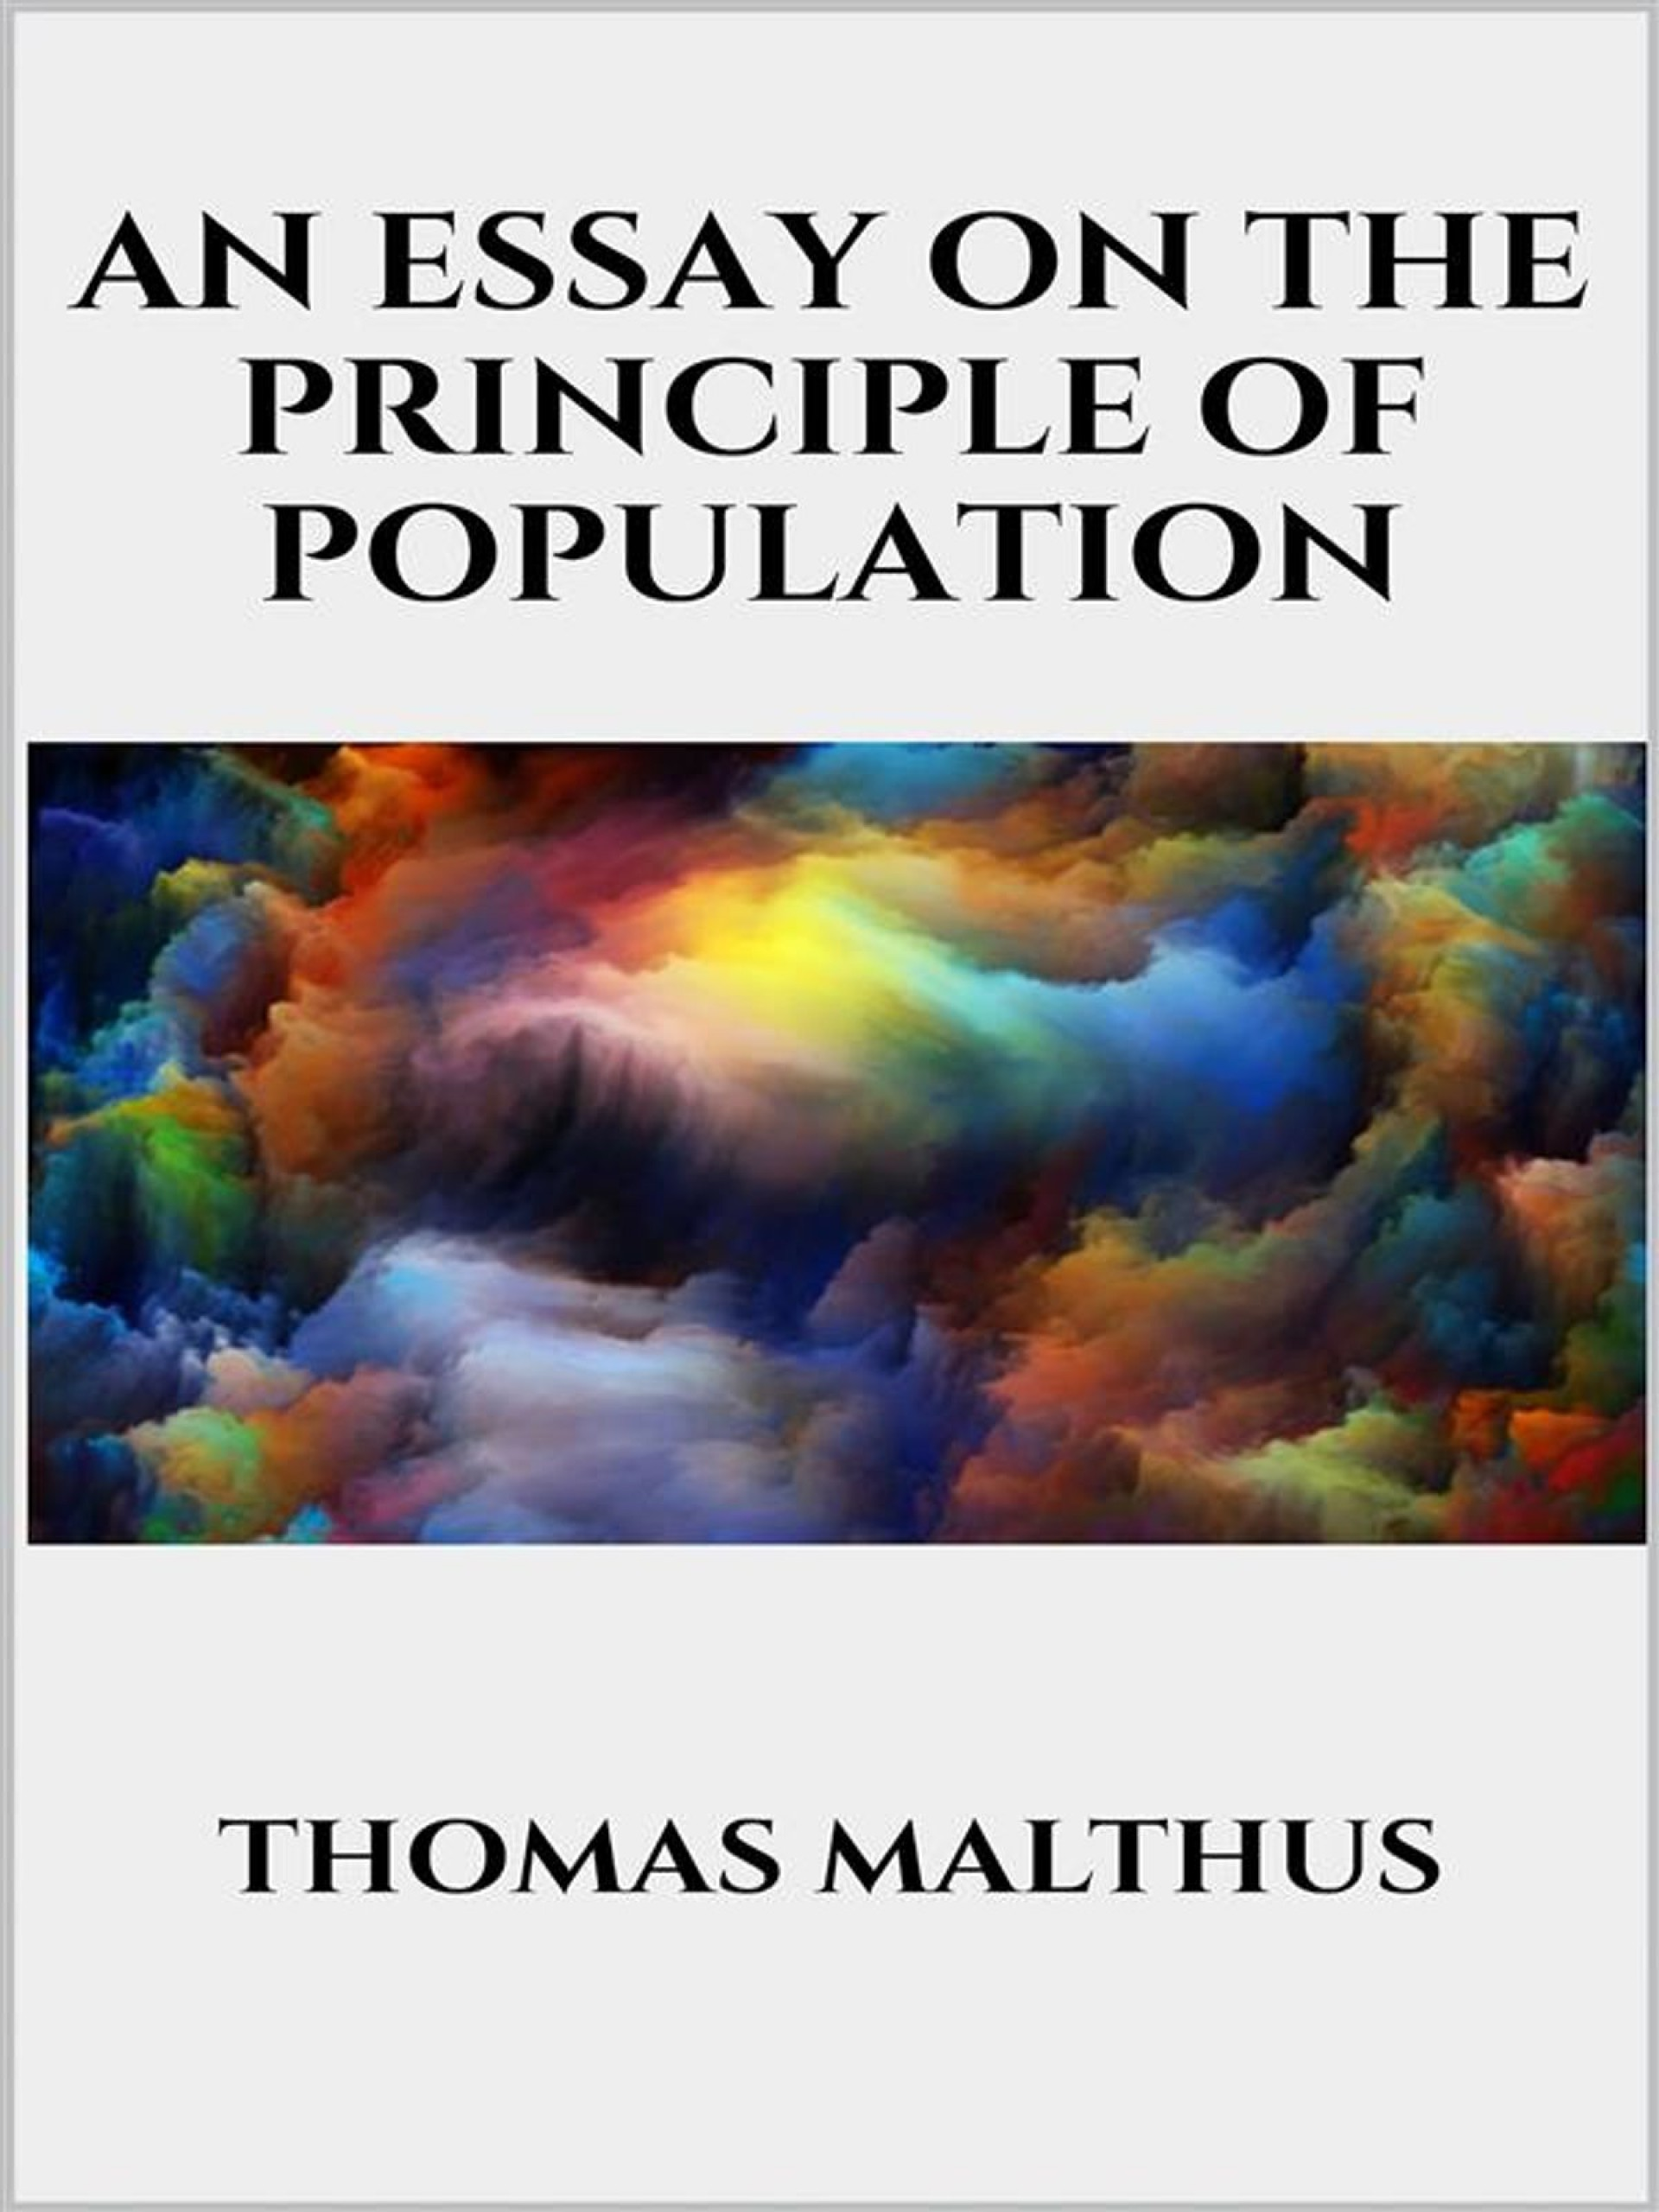 015 Thomas Malthus An Essay On The Principle Of Population Marvelous Summary Analysis Argued In His (1798) That 1920